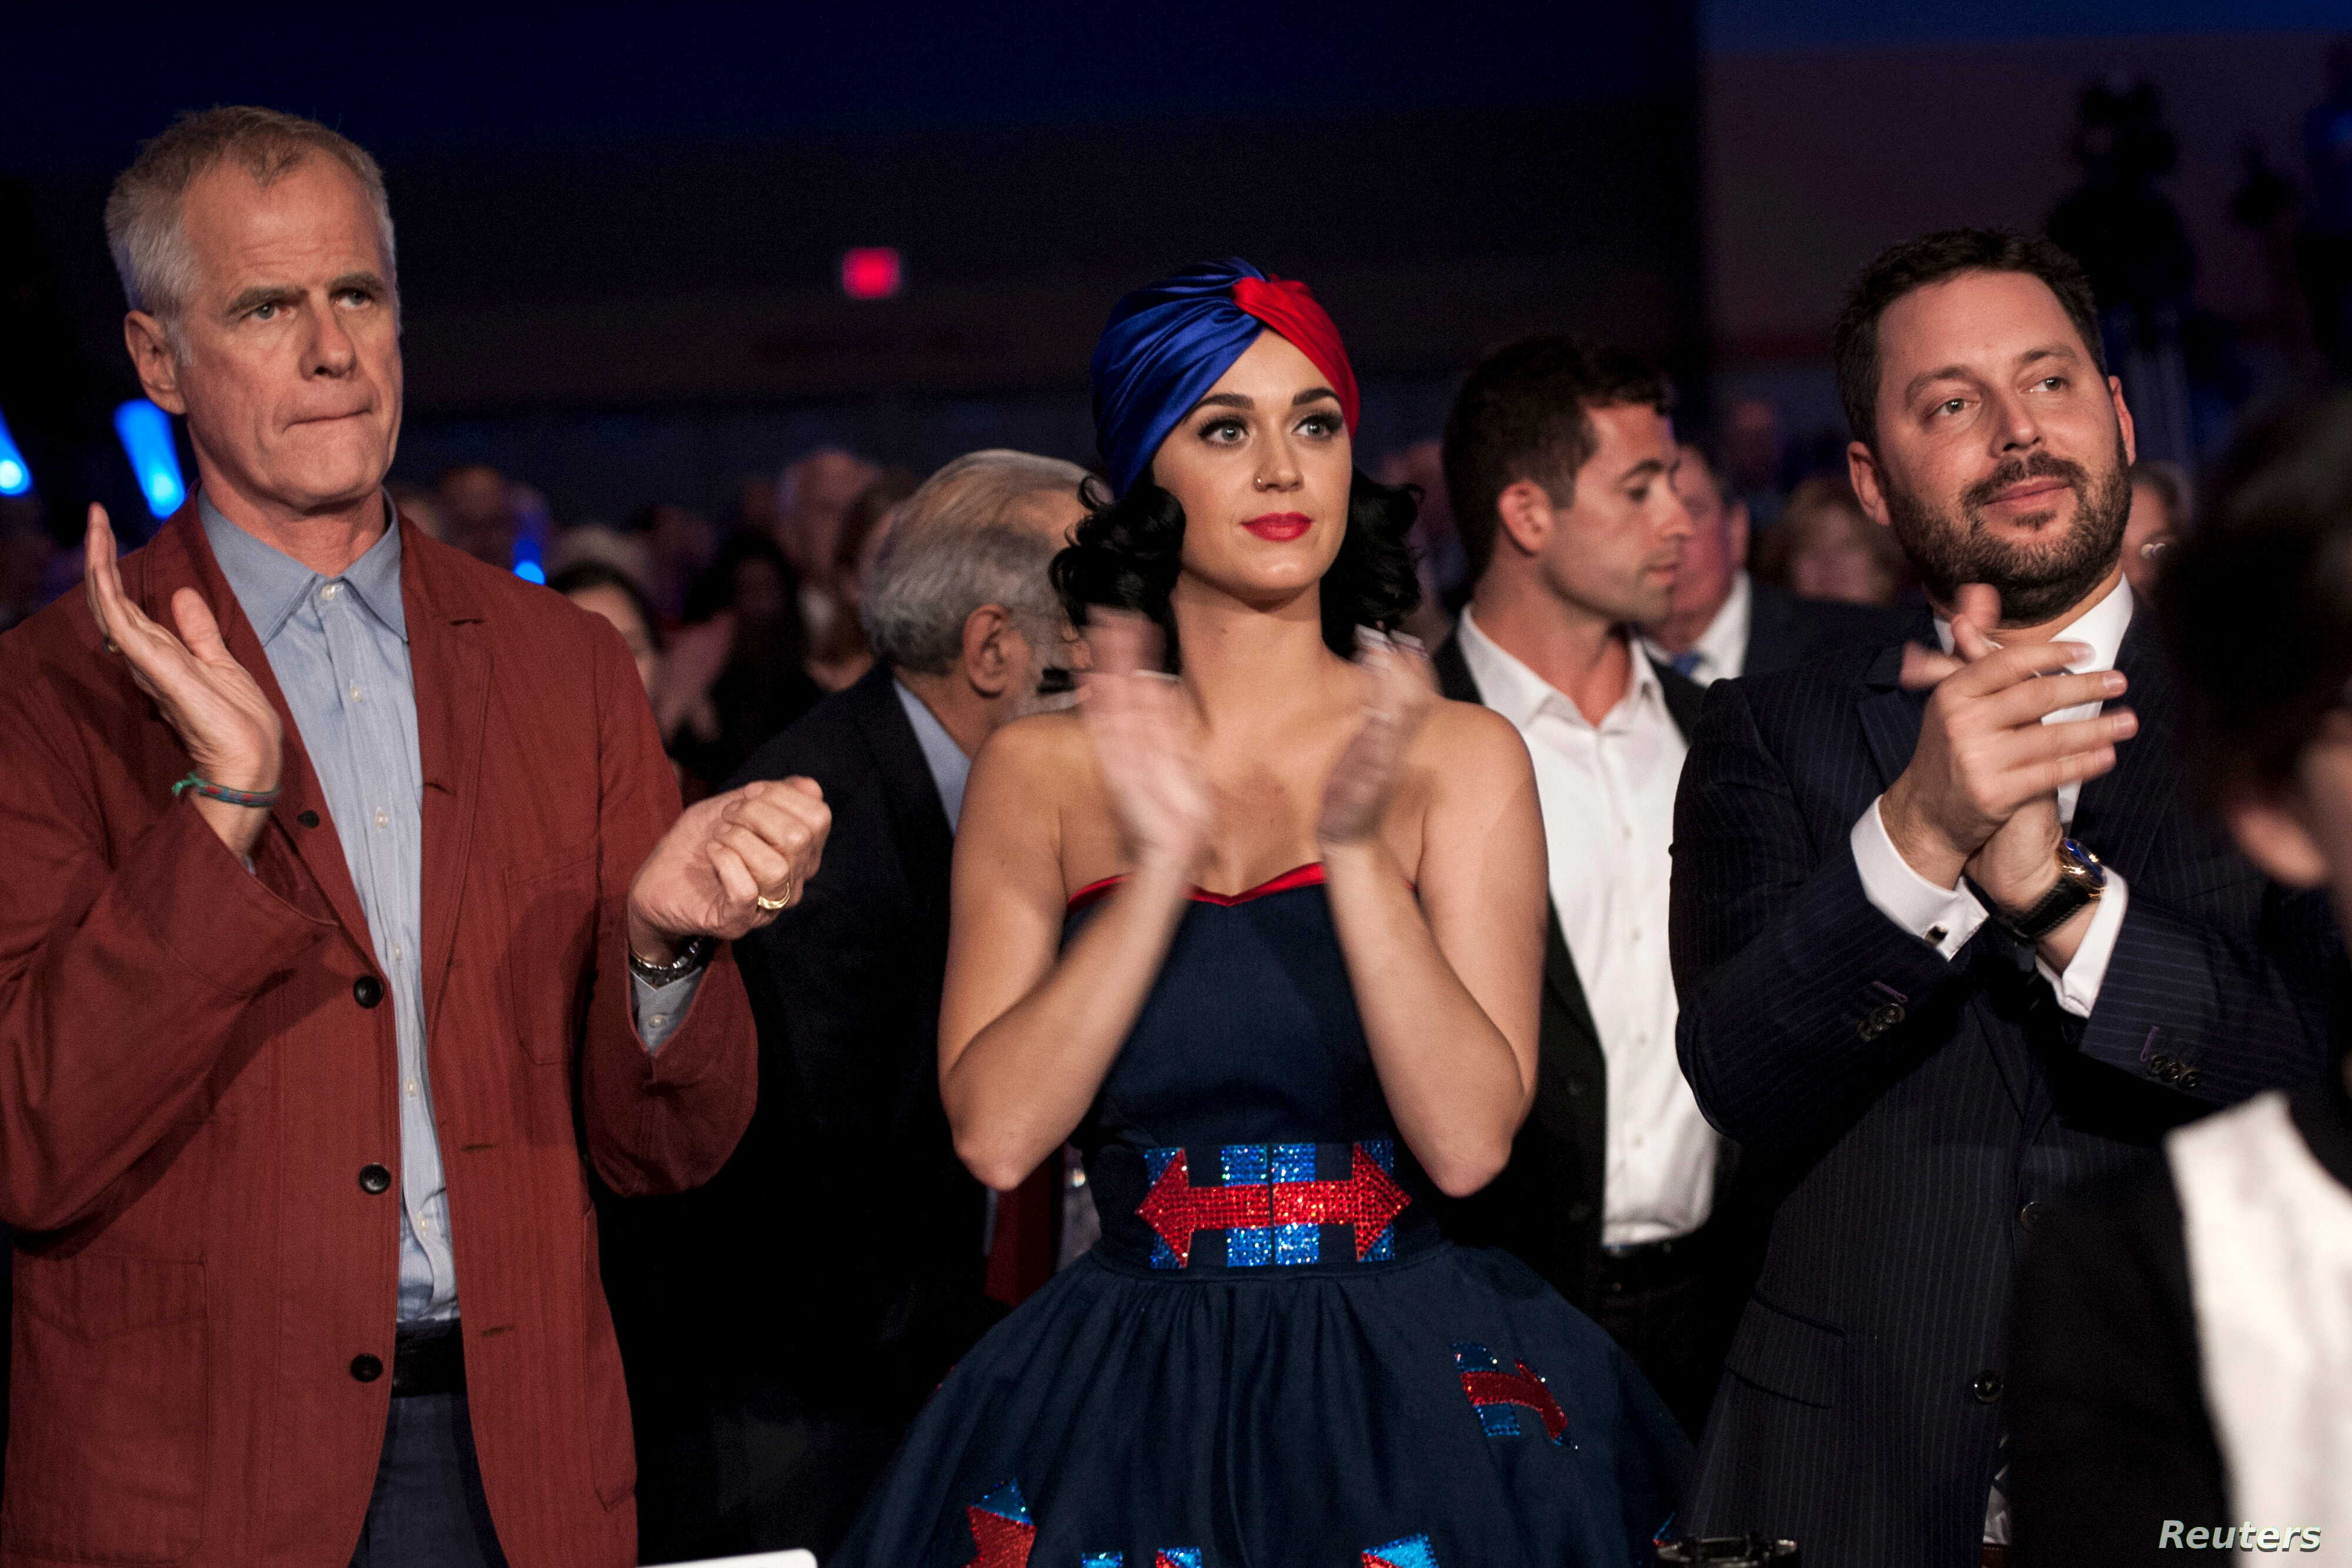 Singer Katy Perry, center, applauds as the Democratic candidates for president take the stage at the Jefferson-Jackson Dinner in Des Moines, Iowa, Oct. 24, 2015.